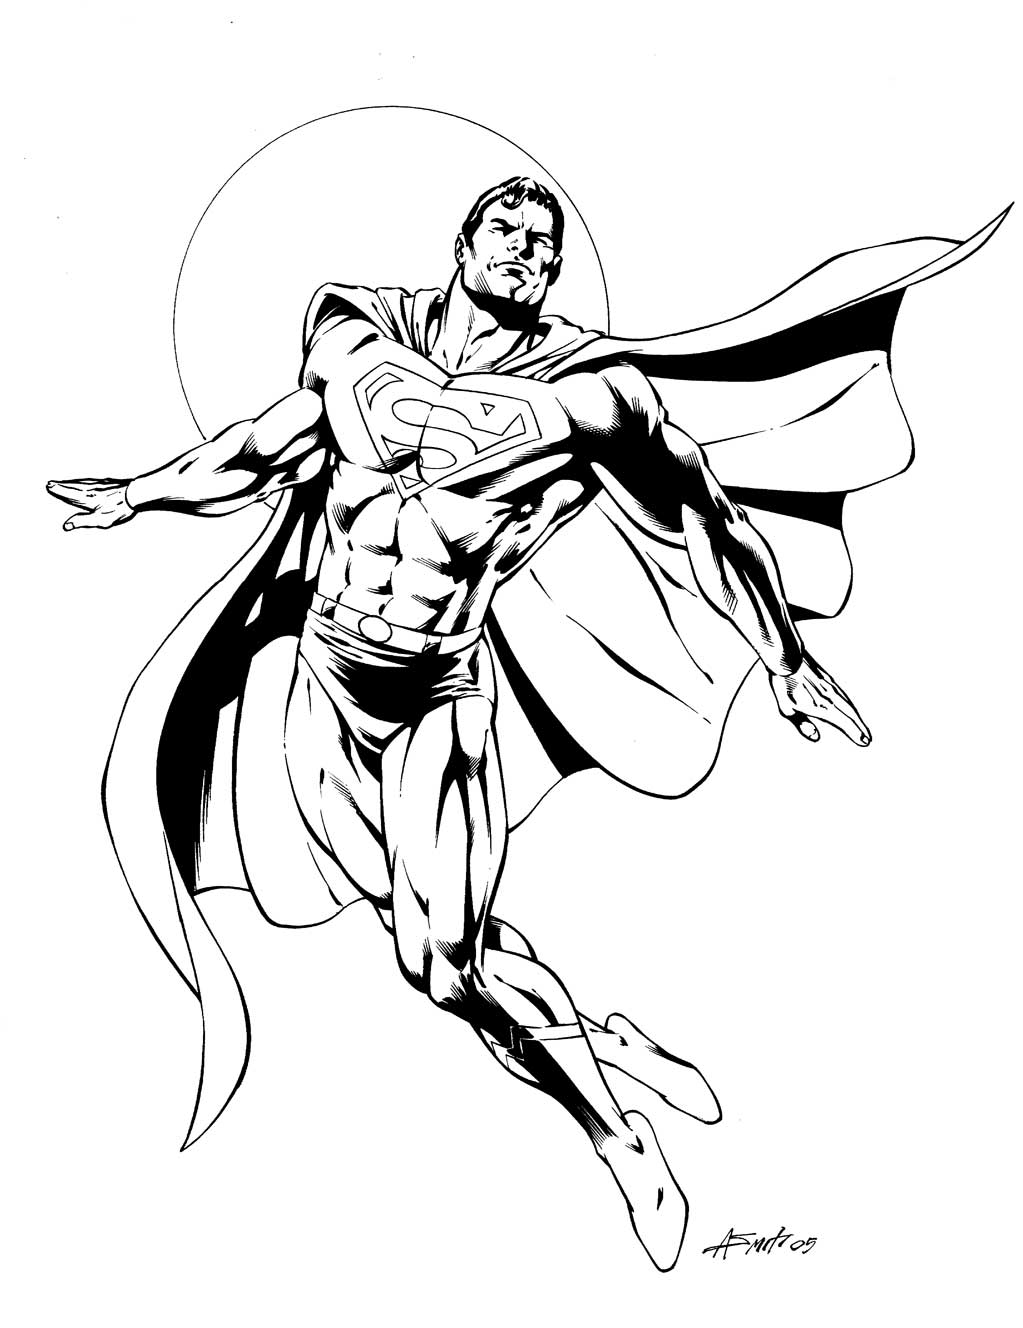 coloring pages of superman superman coloring pages fotolipcom rich image and wallpaper superman coloring of pages